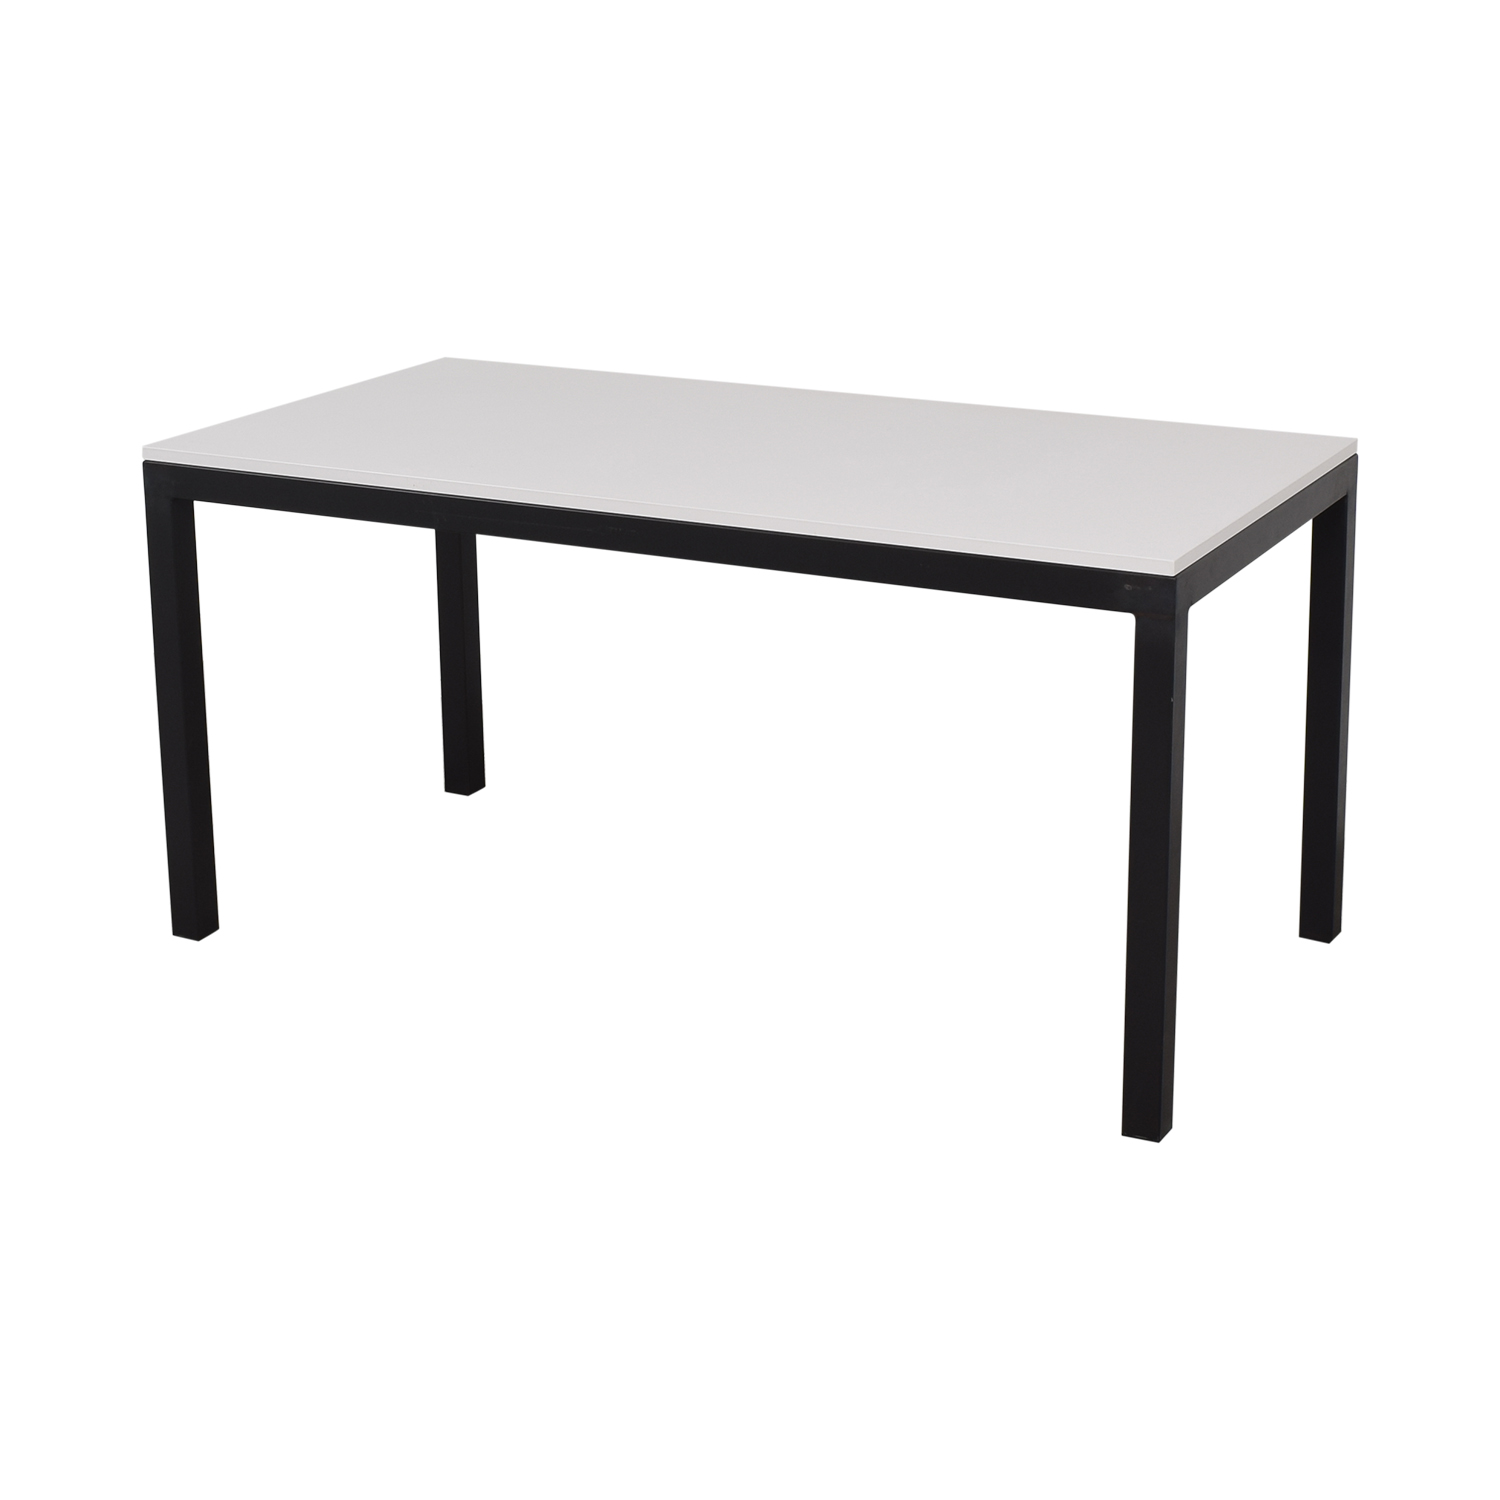 buy Room & Board Room & Board Parson Table online